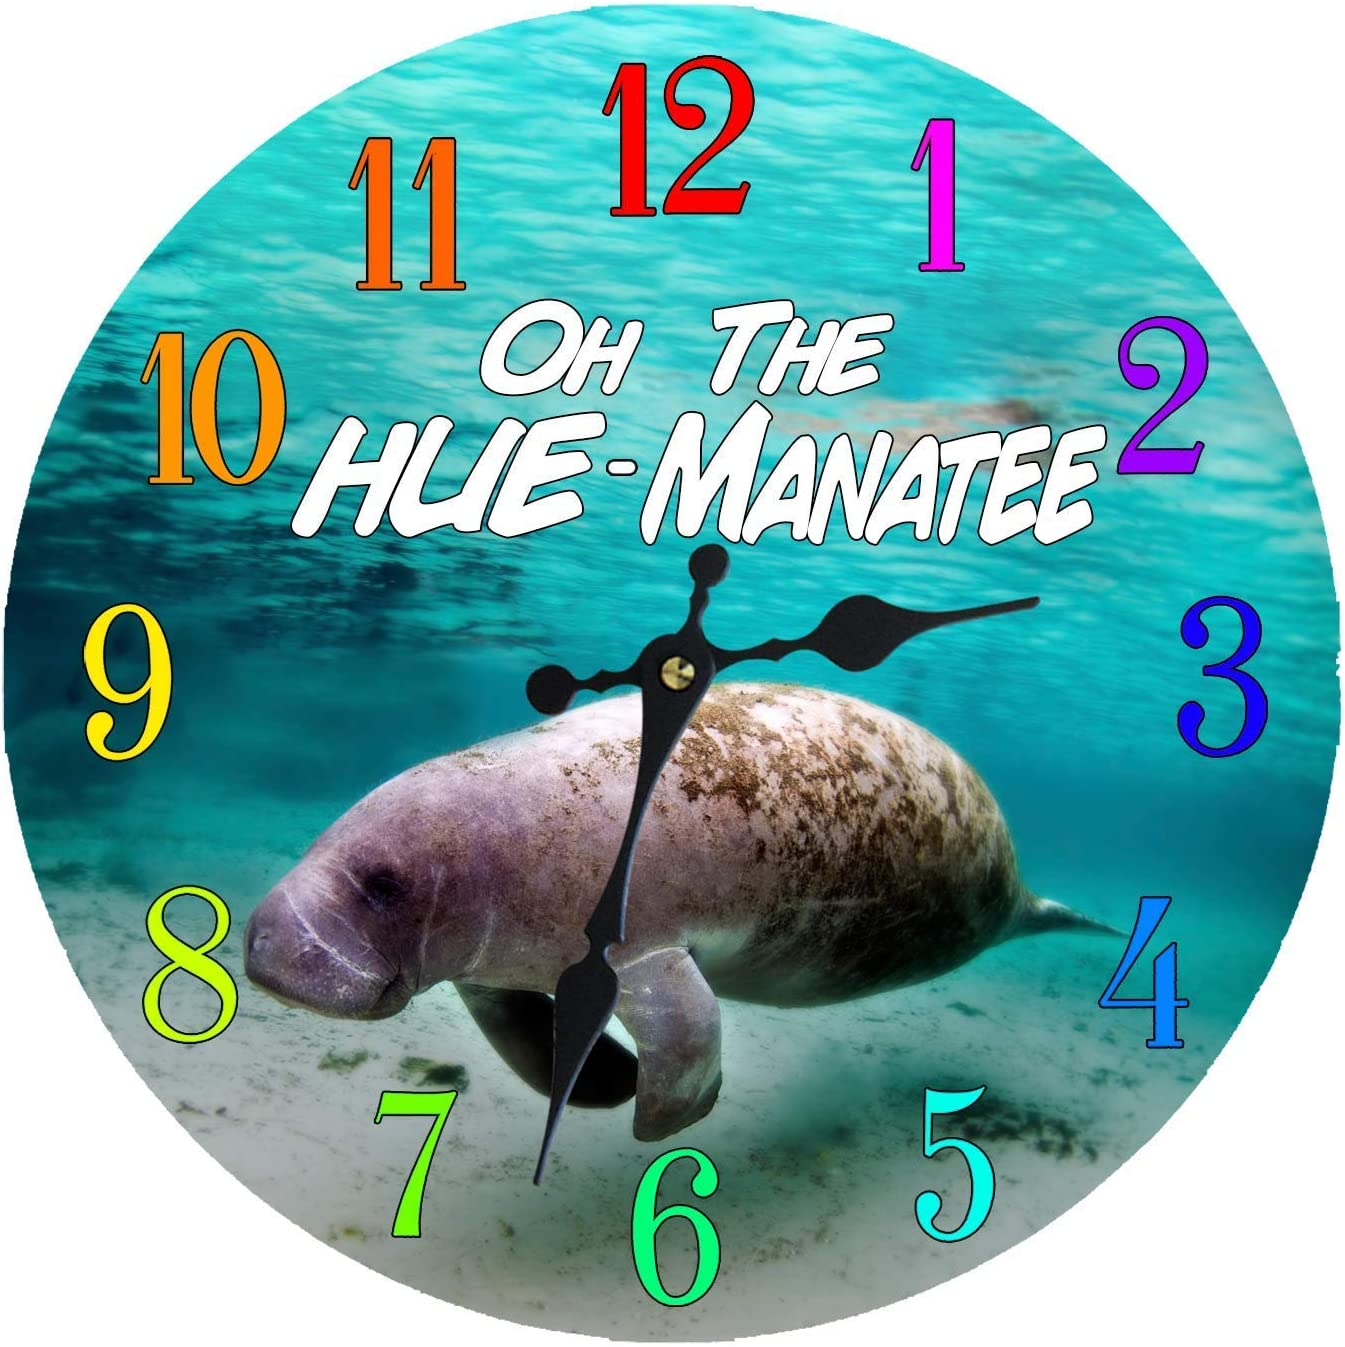 Wall Clock Glass Manatee Decorative 12 Inch Beach Theme Perfect Decor for  Kitchen Bathroom Office Rustic Battery Operated Clocks Great Nautical Theme  ...